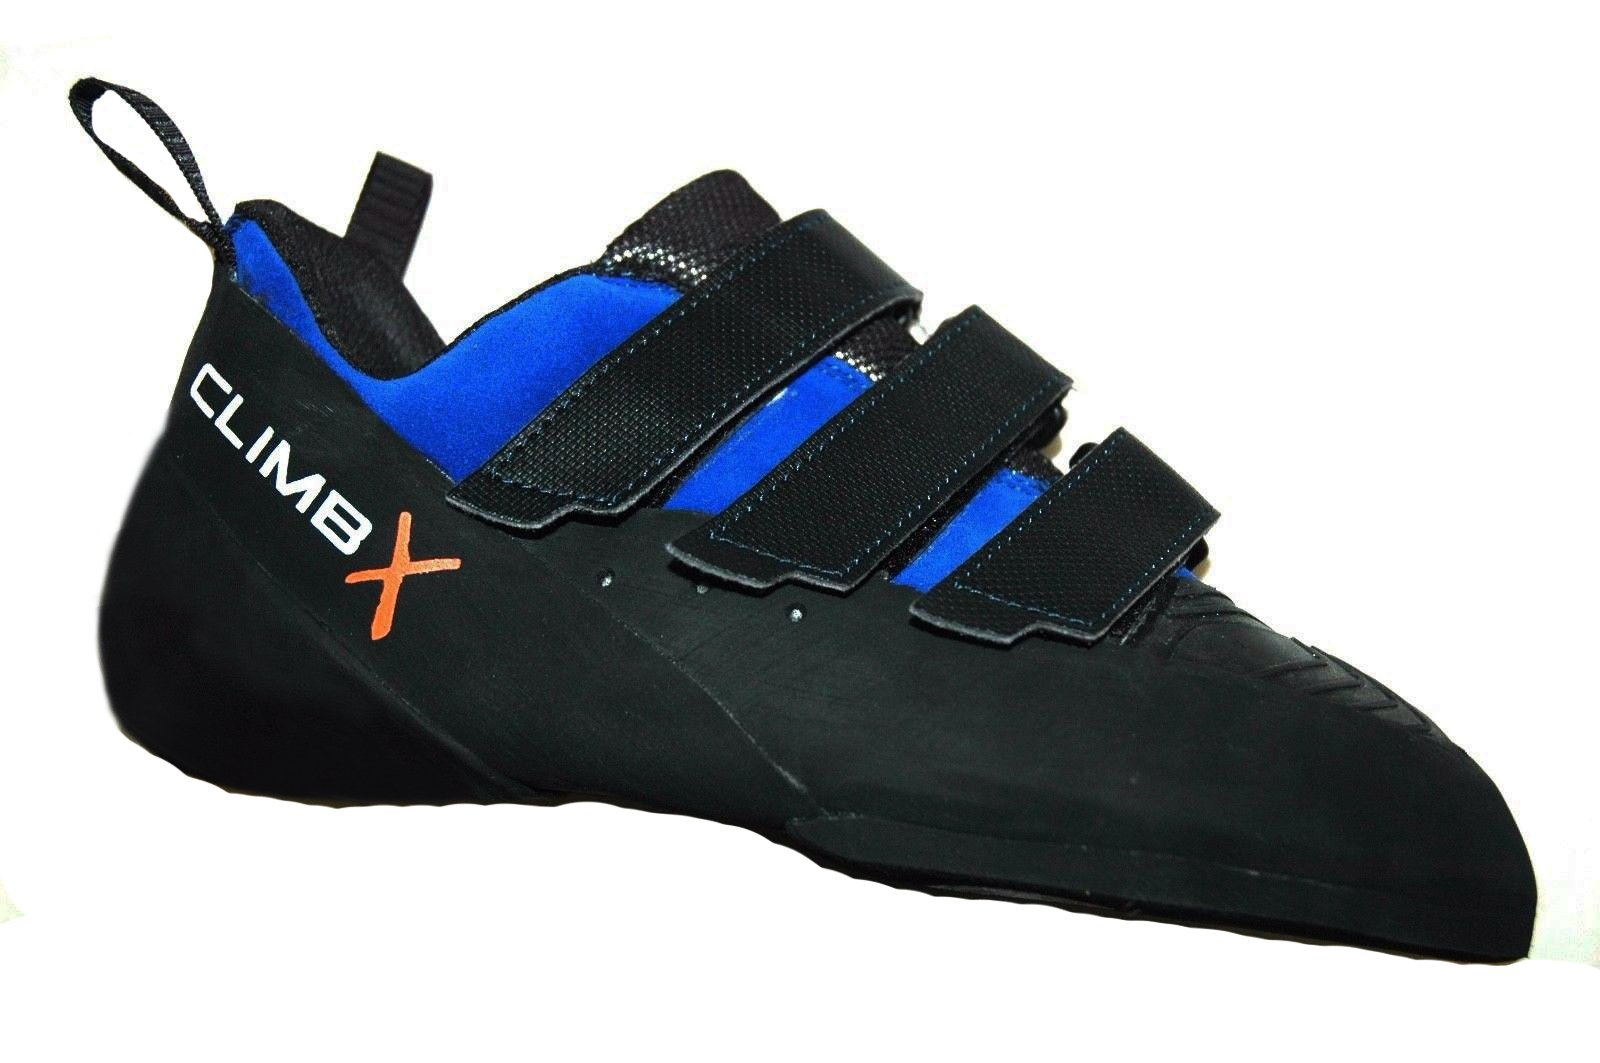 Climb X Technician Strap Climbing Shoes (5) by Climb X